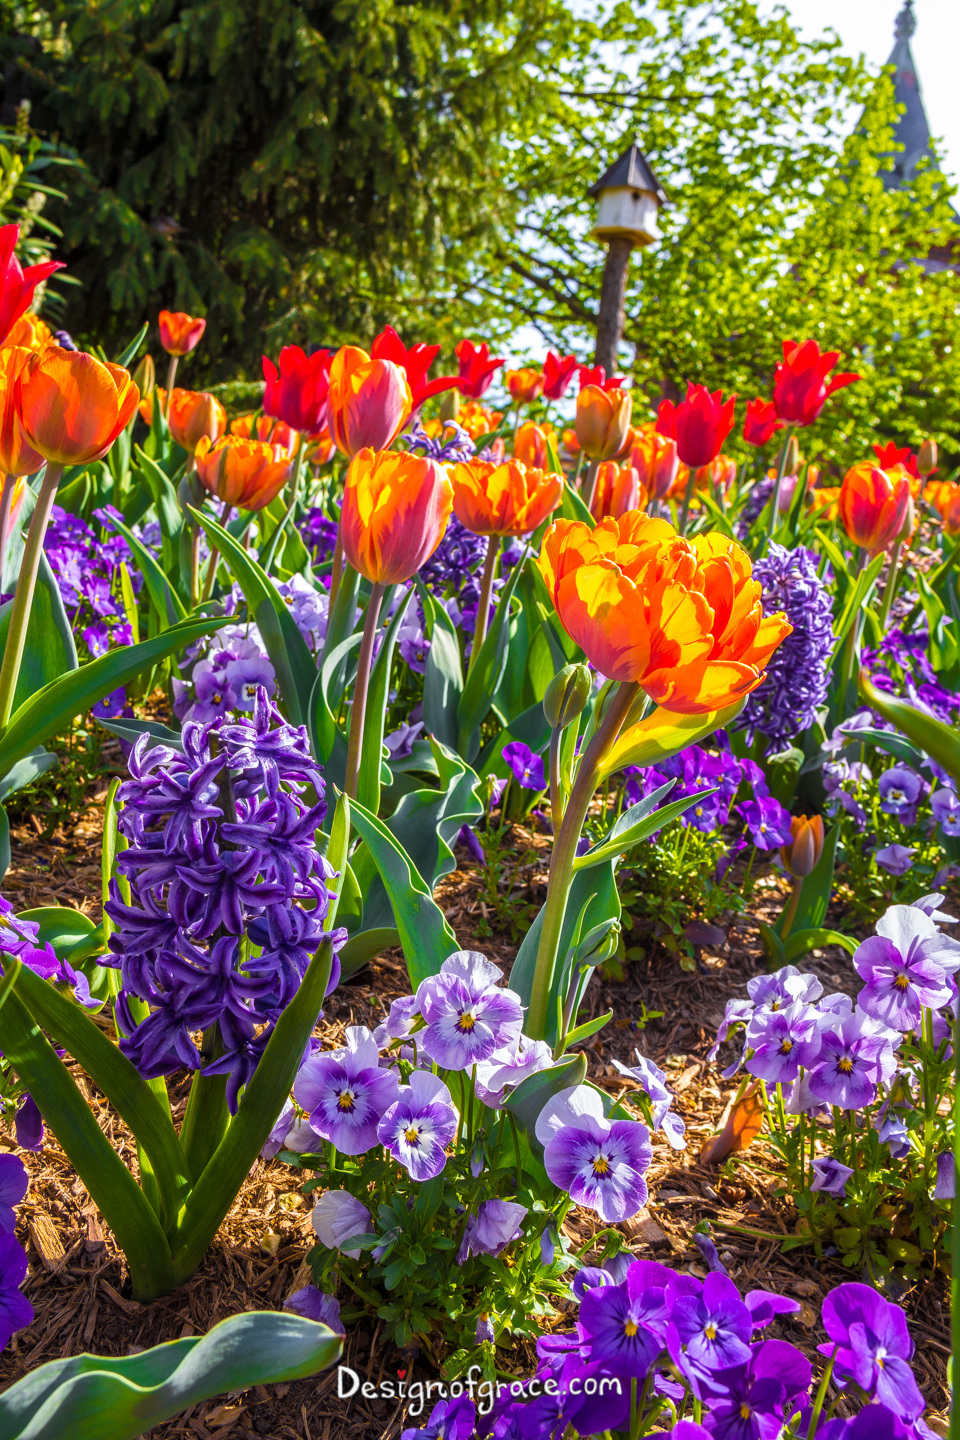 Blue flowers, orange and red tulips in Araluen